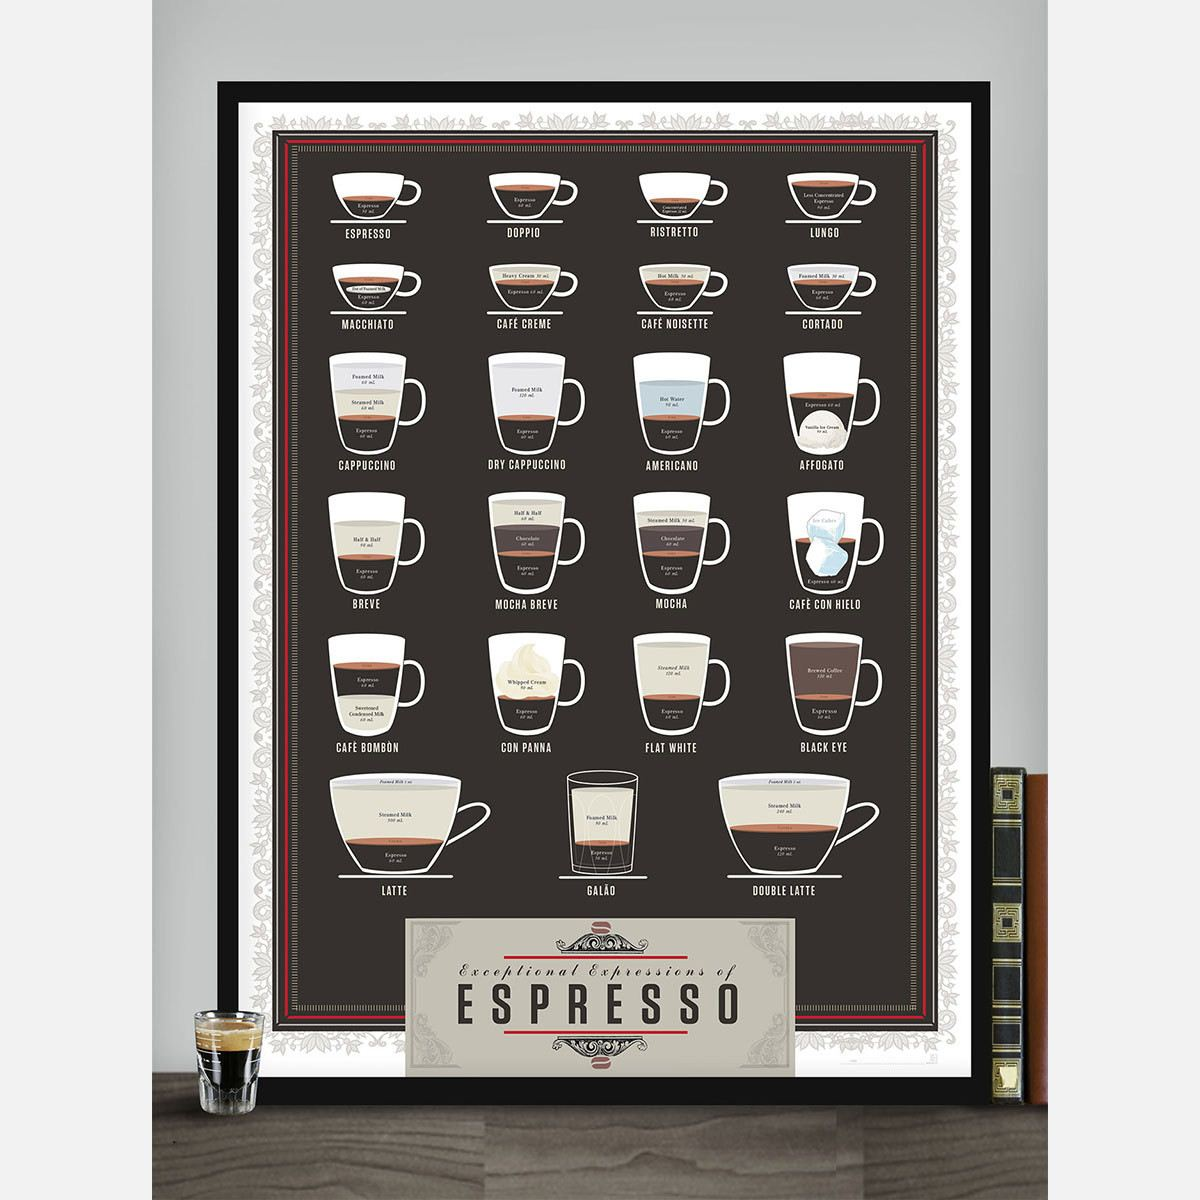 Exceptional Expressions of Espresso Poster